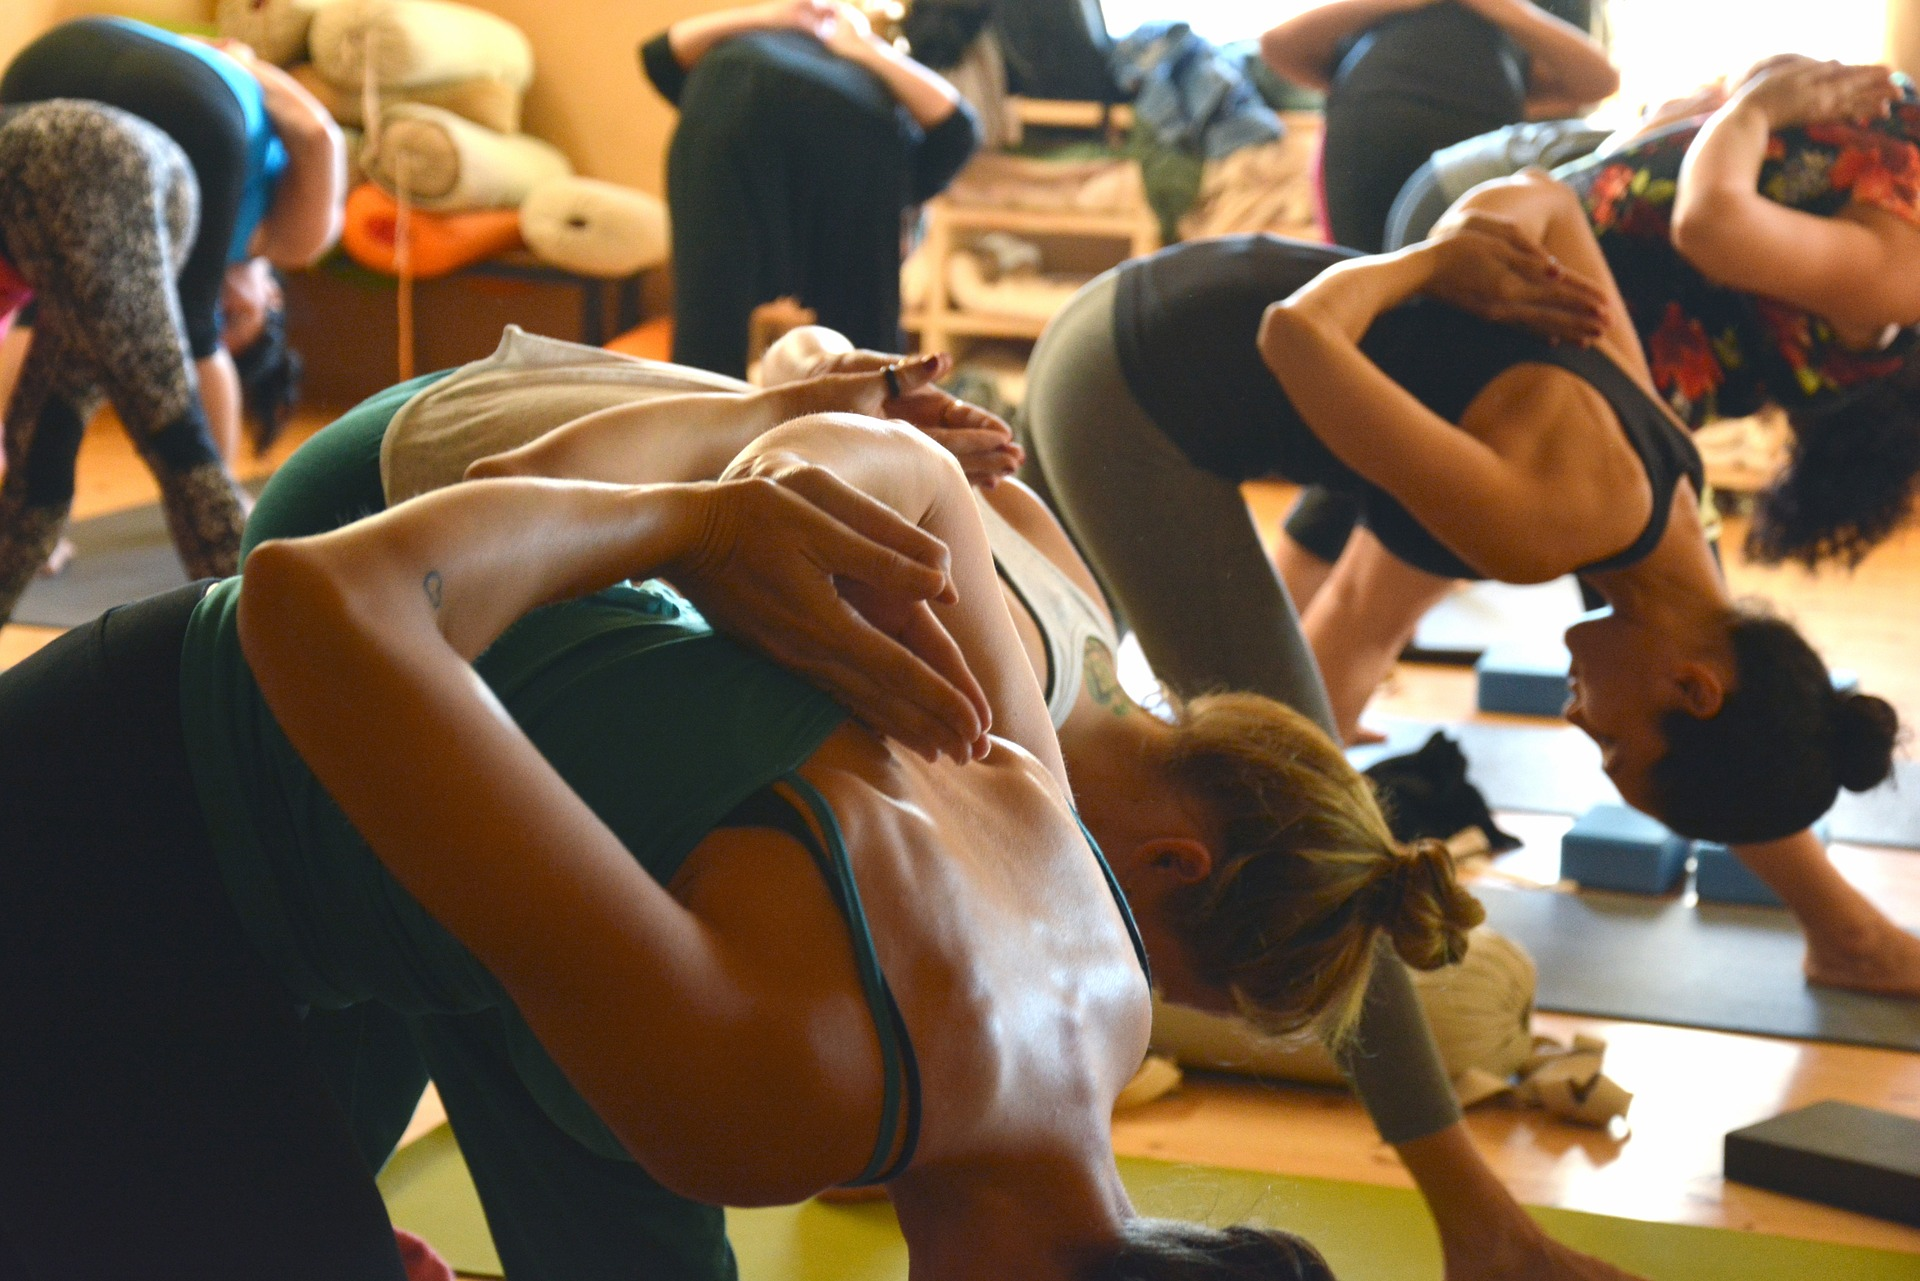 2019 Canadian Yoga Conferences And Festivals Ydc Community Blog